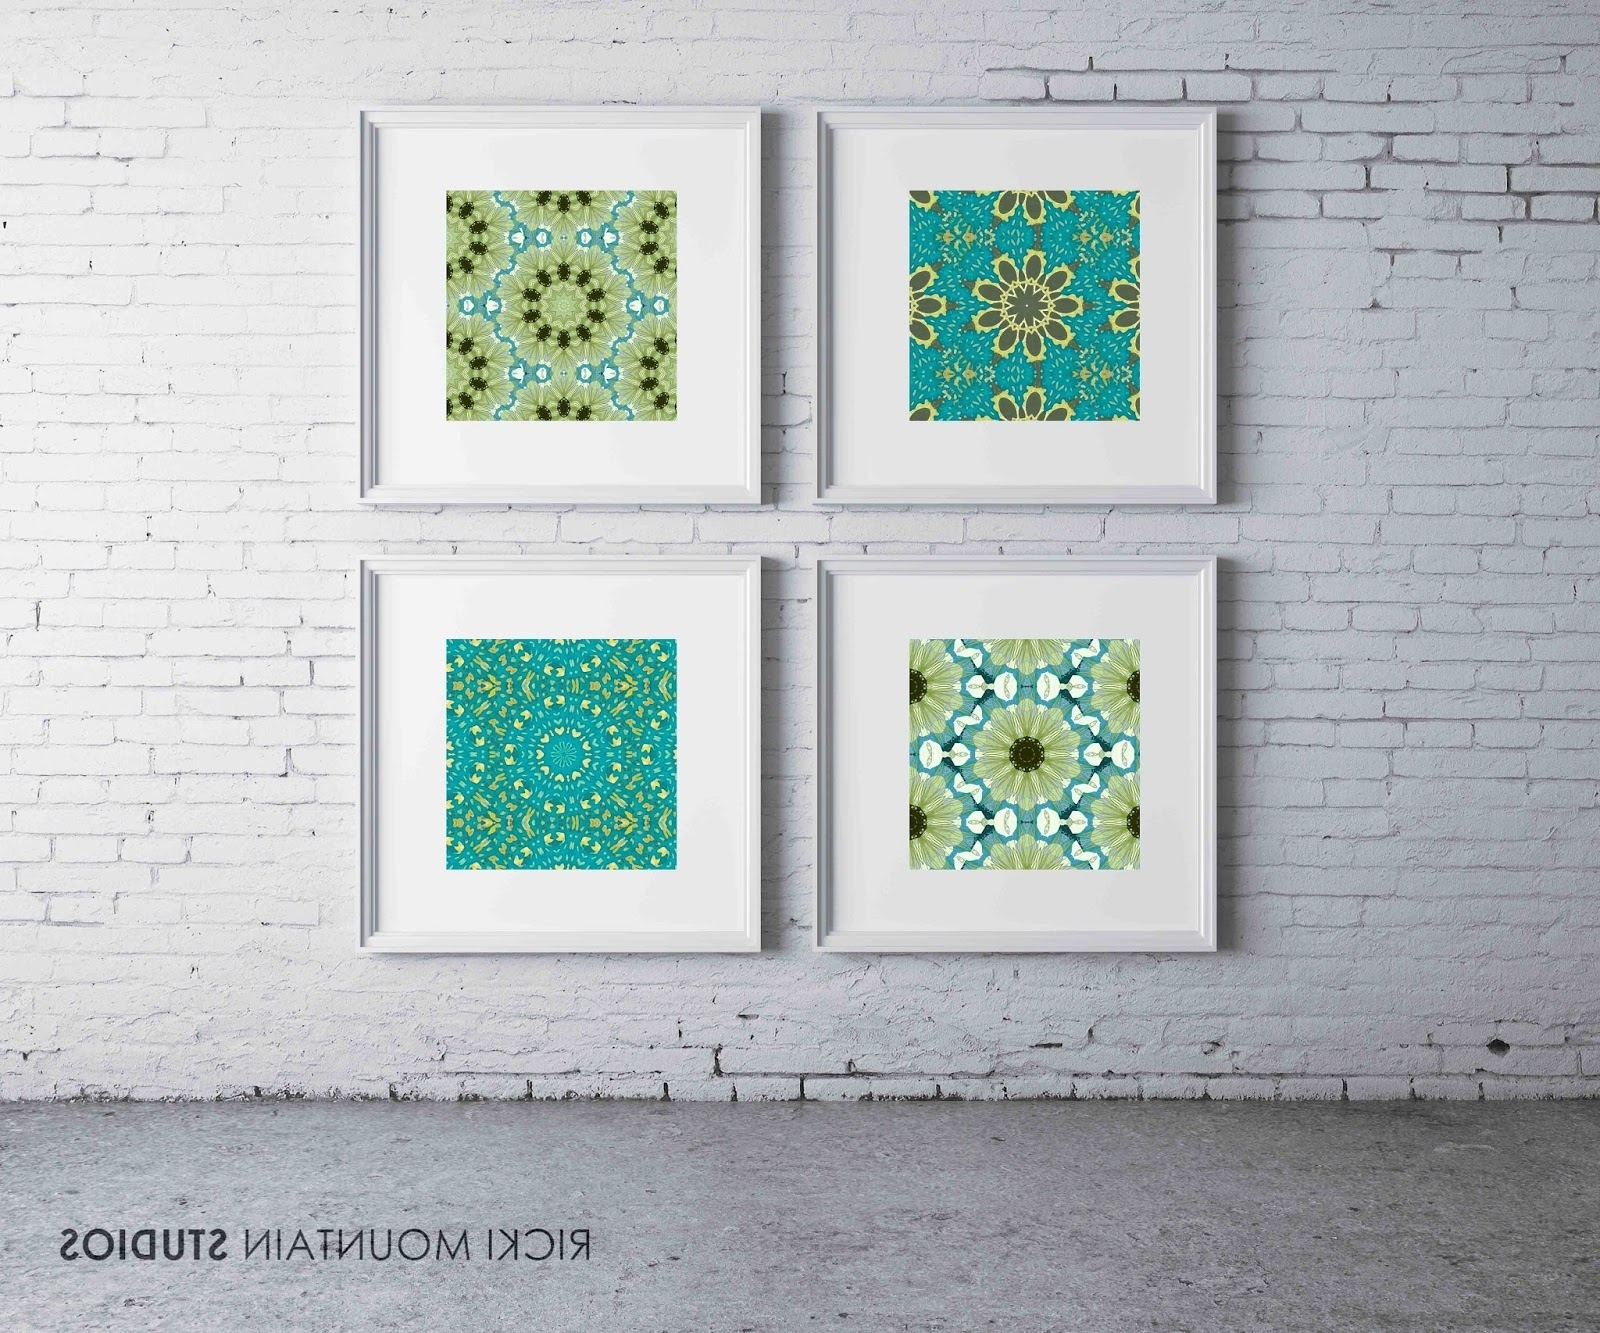 Famous A Love Of Symmetry, Pattern And Color Regarding Framed Art Prints Sets (View 3 of 15)